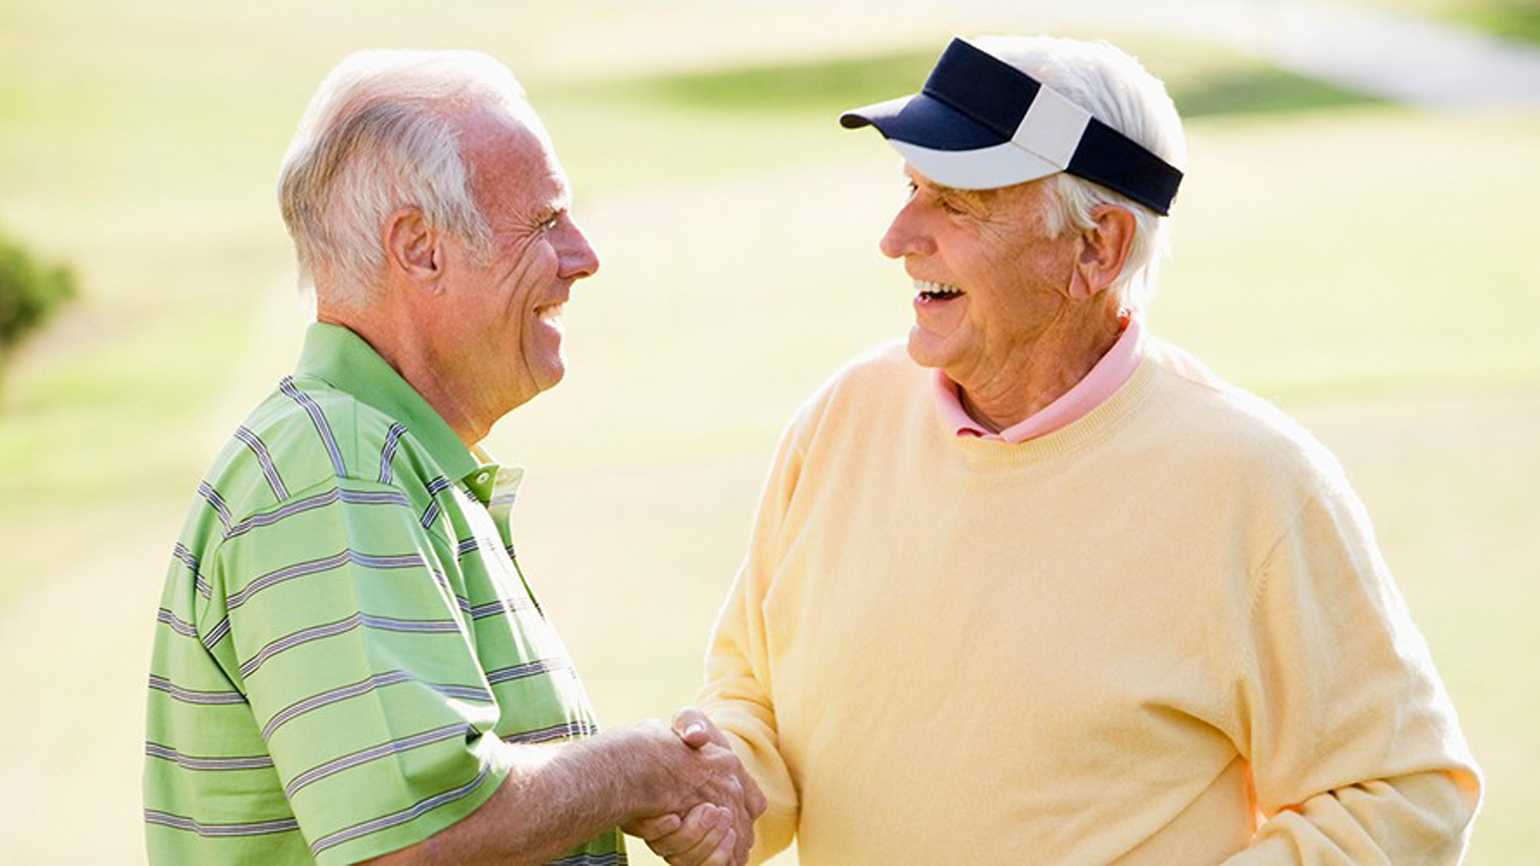 Two men conversing on a golf course.